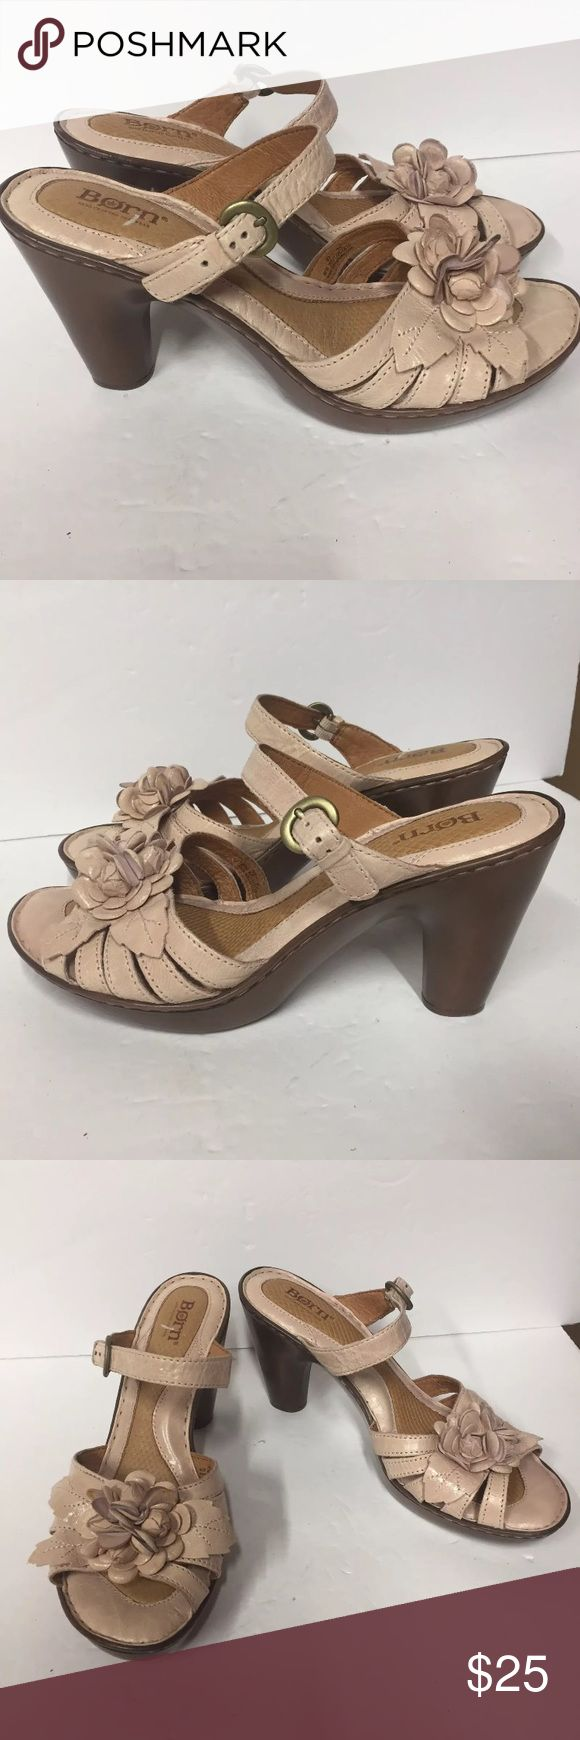 Born Woman's Pink Heeled Floral Leather Sandals 10 Woman's Born pink floral heeled sandals size 10. Good pre owned condition. Has a few faint stains on the floral petals . See photos. Comes from a smoke free home. Born Shoes Sandals